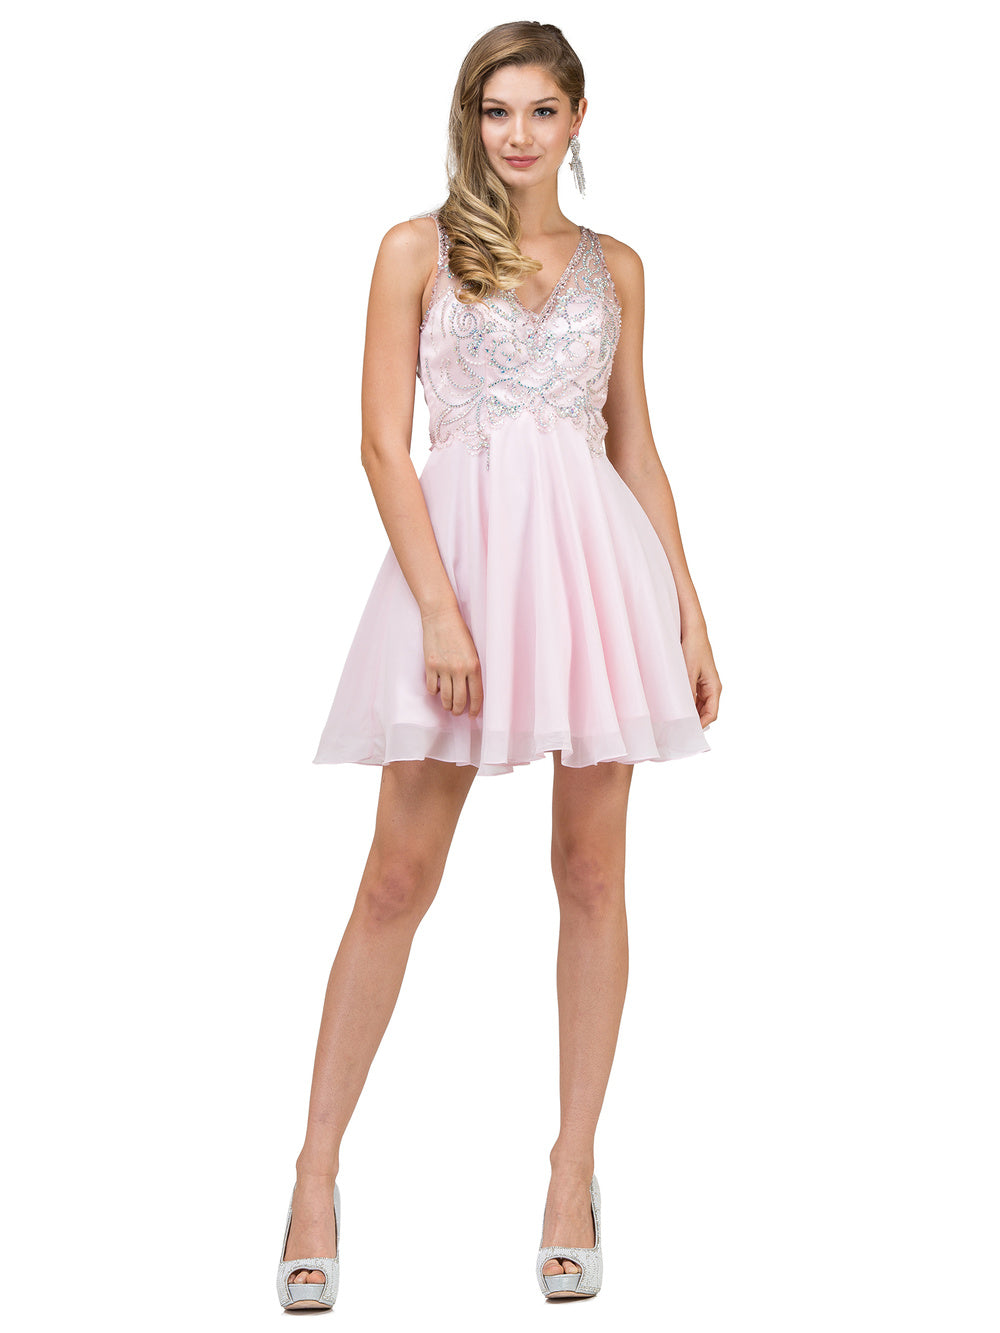 Dancing Queen DQ 2124 - Homecoming V-Neck with Sheer Cut Out Back Short Chiffon Skirt - Diggz Prom